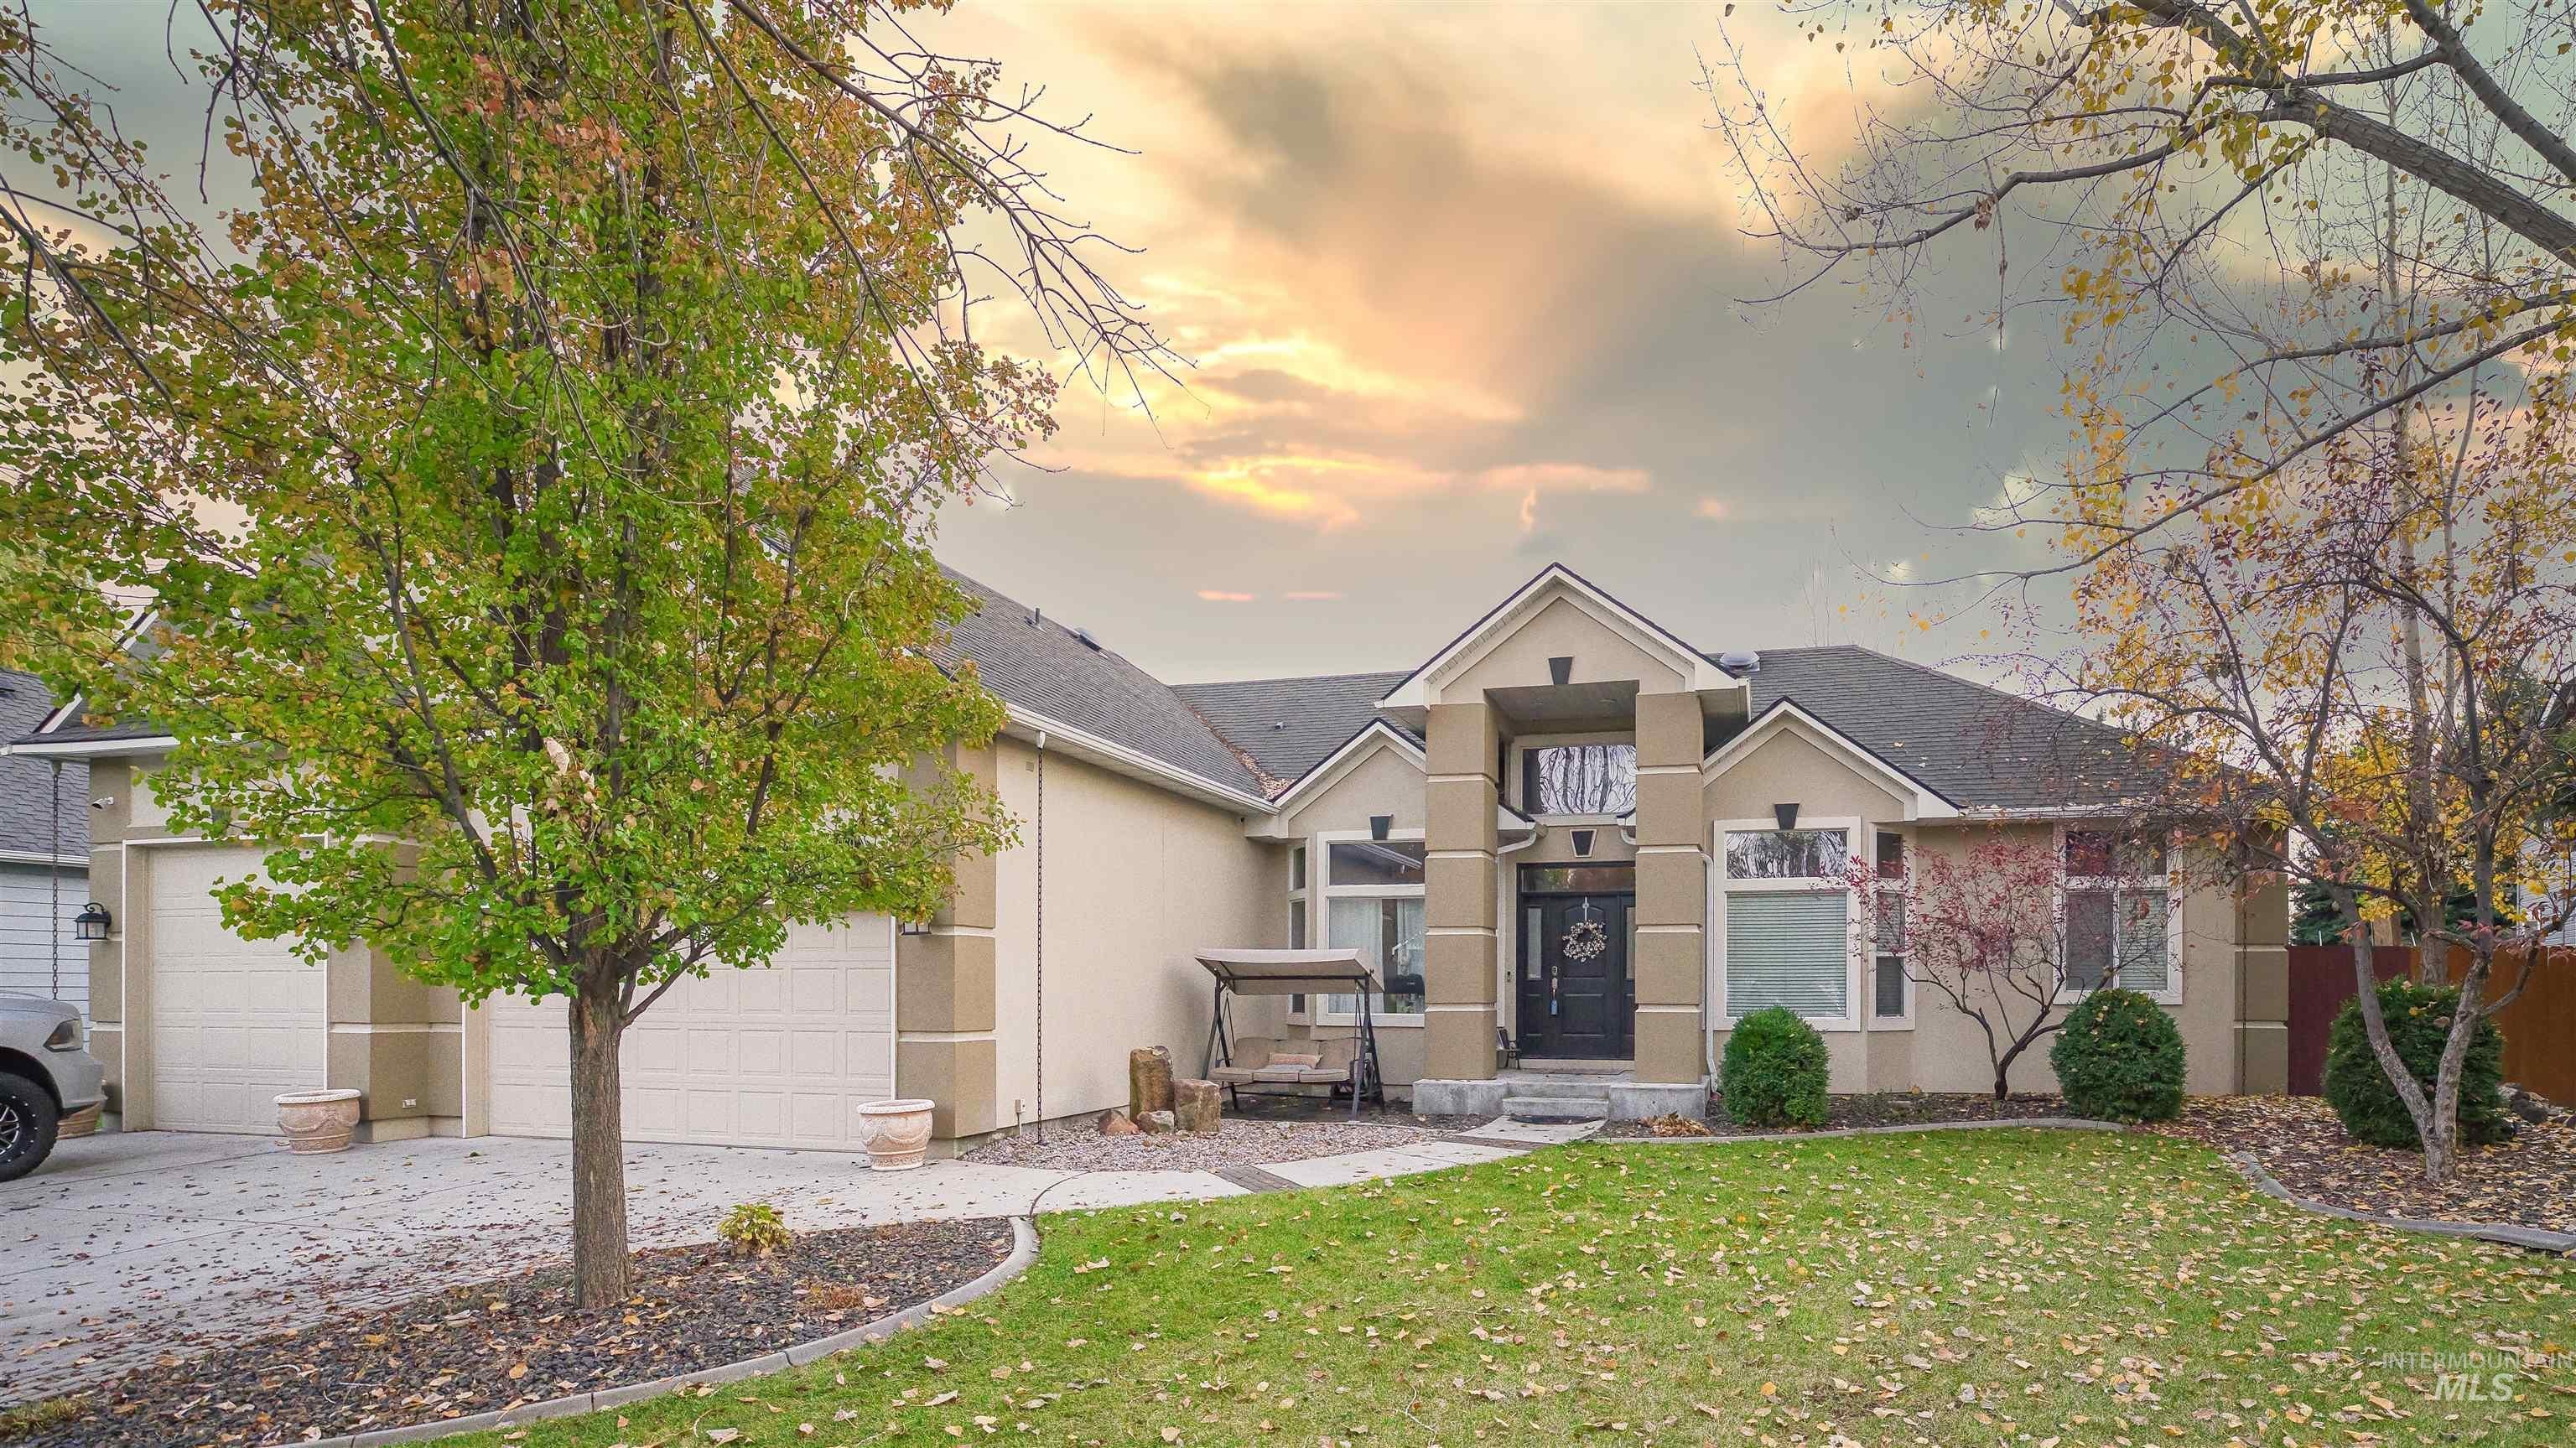 """Beautiful single level home on 1/4 acre lot Next to Lakeview Golf Course, with large 3+ garage, RV bay, and RV parking behind gates.40x20 back patio (pavers) with sun shade, Hot Tub, and Above Ground Pool. There are New hardwood floors done in 2021 in Entry, Hall Ways, Office, Kitchen, and Dining Room. New Lighting Fixtures, A/C in Garage, There is room for everyone in this home with a large great room, a formal living room, Plus an Office. The home is considered a """"smart Home"""", you can control the entire house with your phone or tablet. These homes don't come for sale very often and this is a MUST see! - Phabian Essink, Main: 208-867-9159, Silvercreek Realty Group, Main: 208-377-0422, https://Phabian.Essink.SilvercreekRealty.com"""